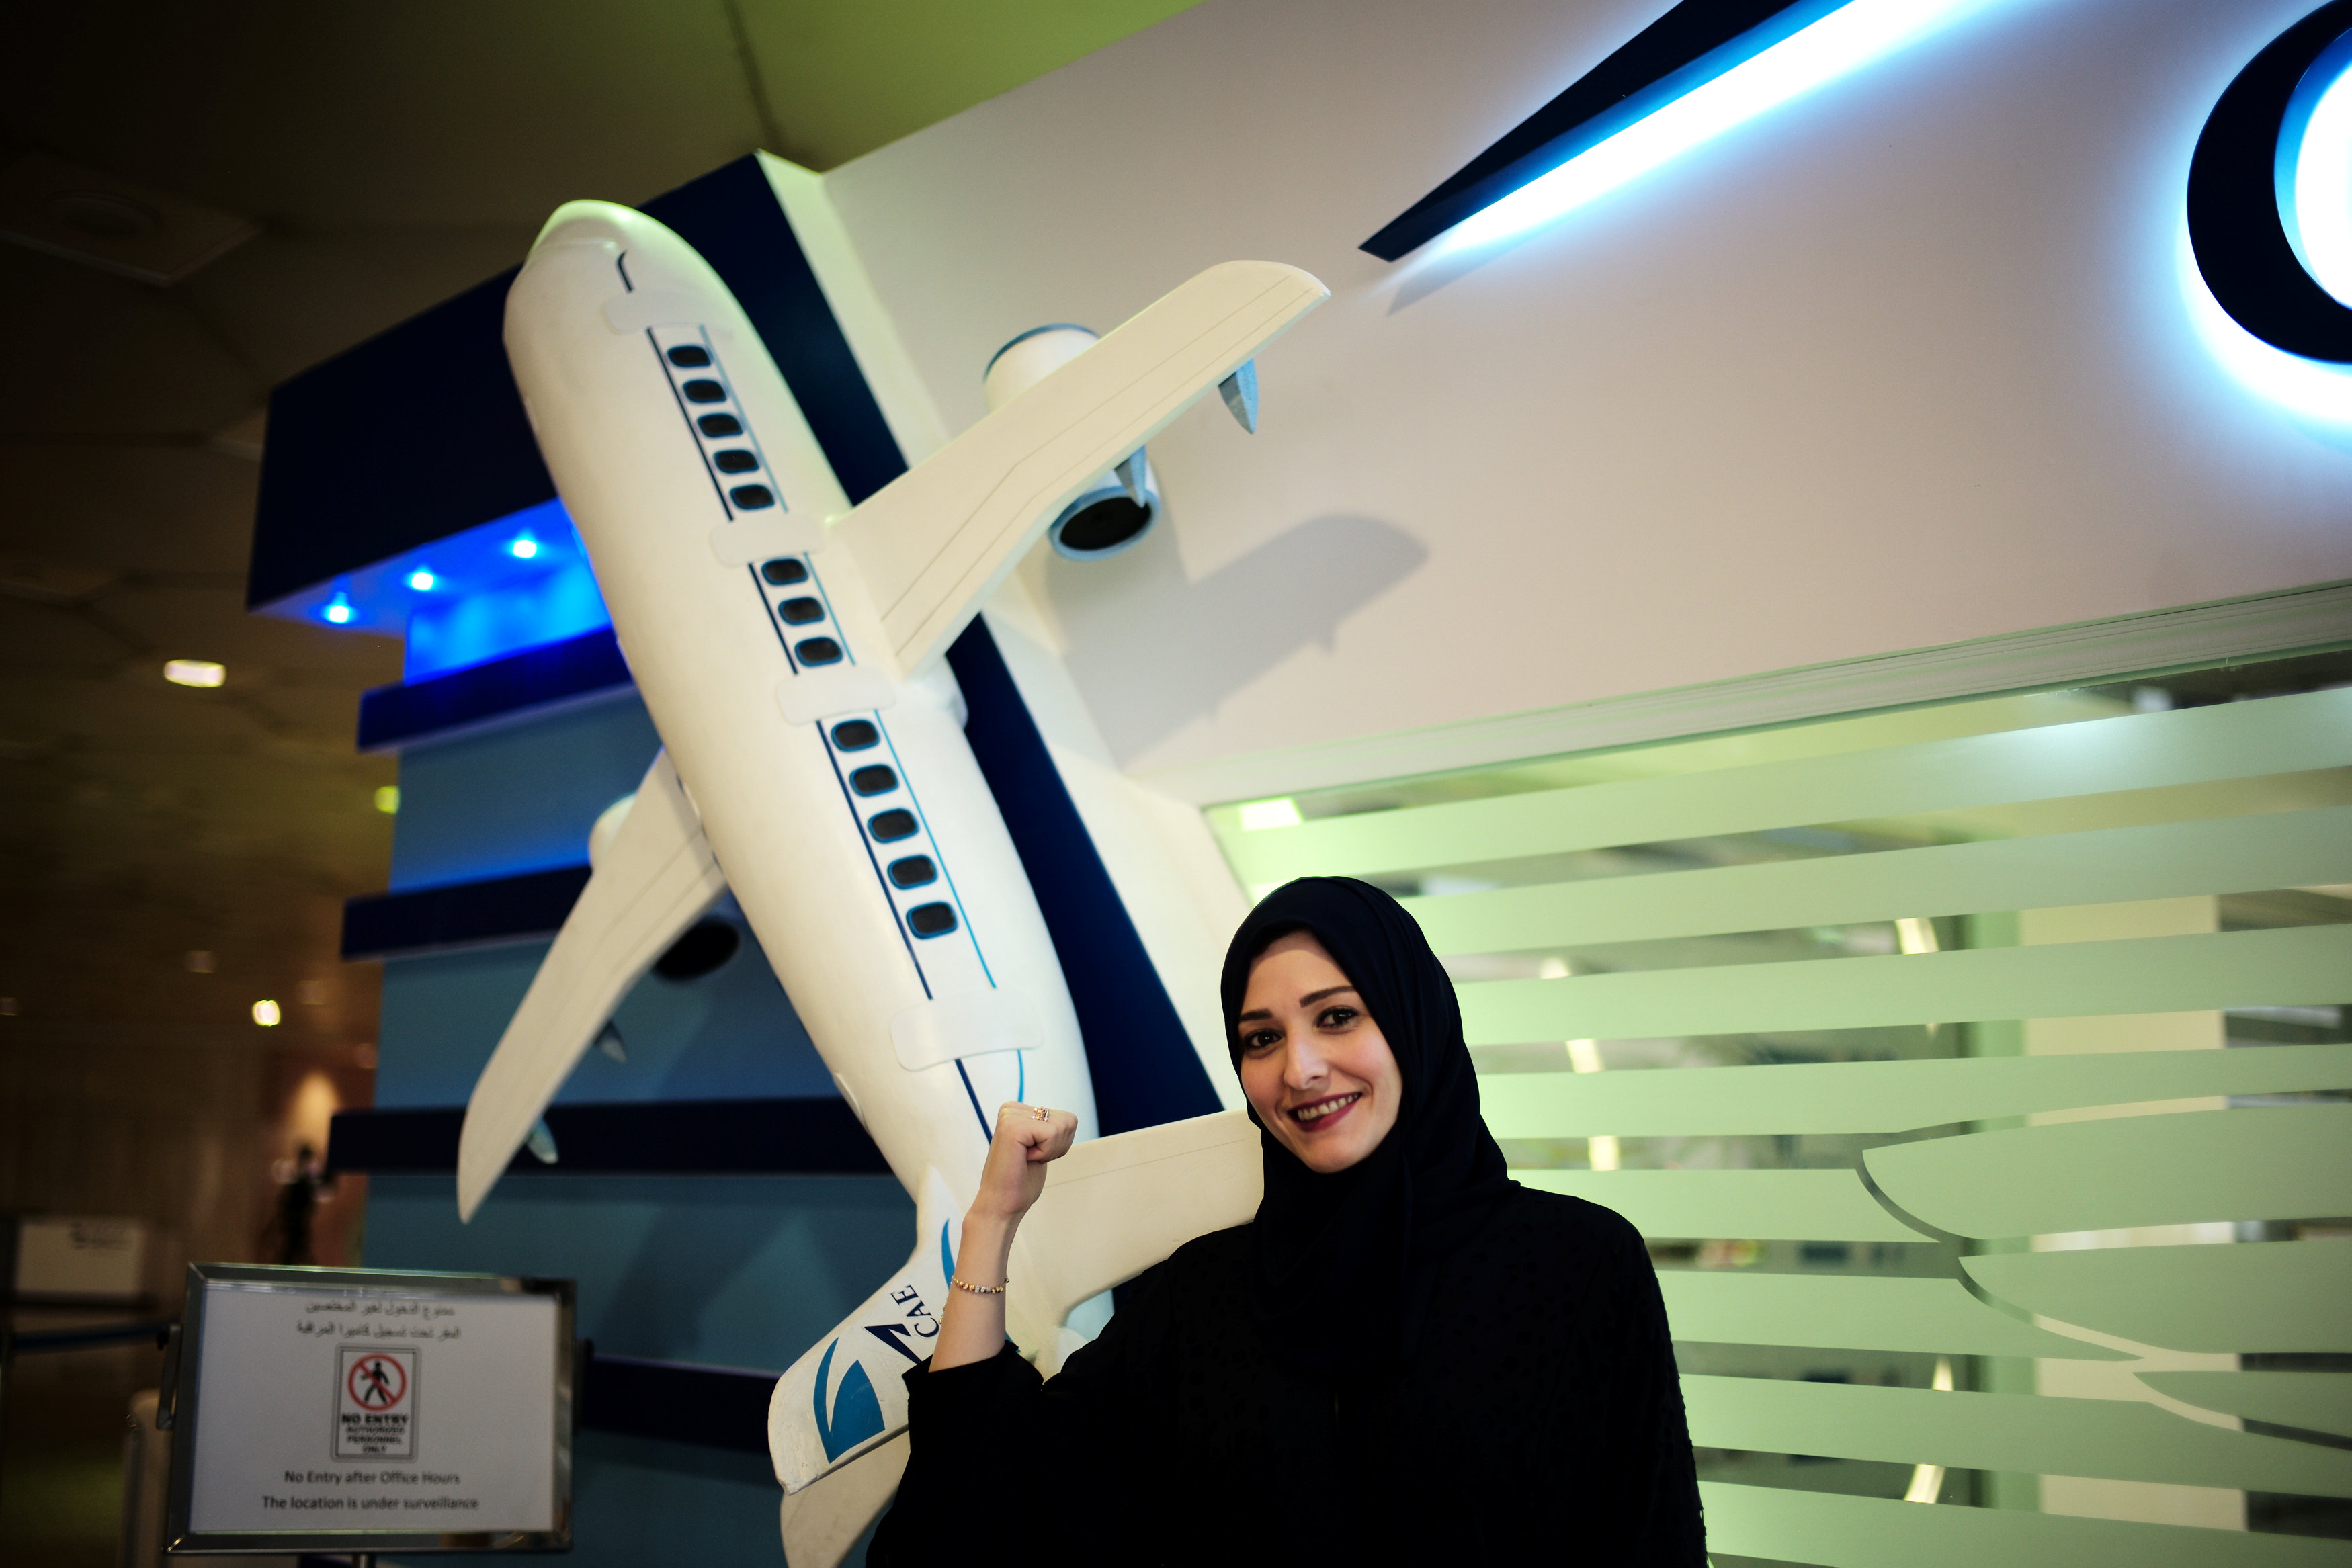 Dalia Yashar, one of the first Saudi students who registered to become a commercial pilot, stands at King Fahd International Airport in Damman